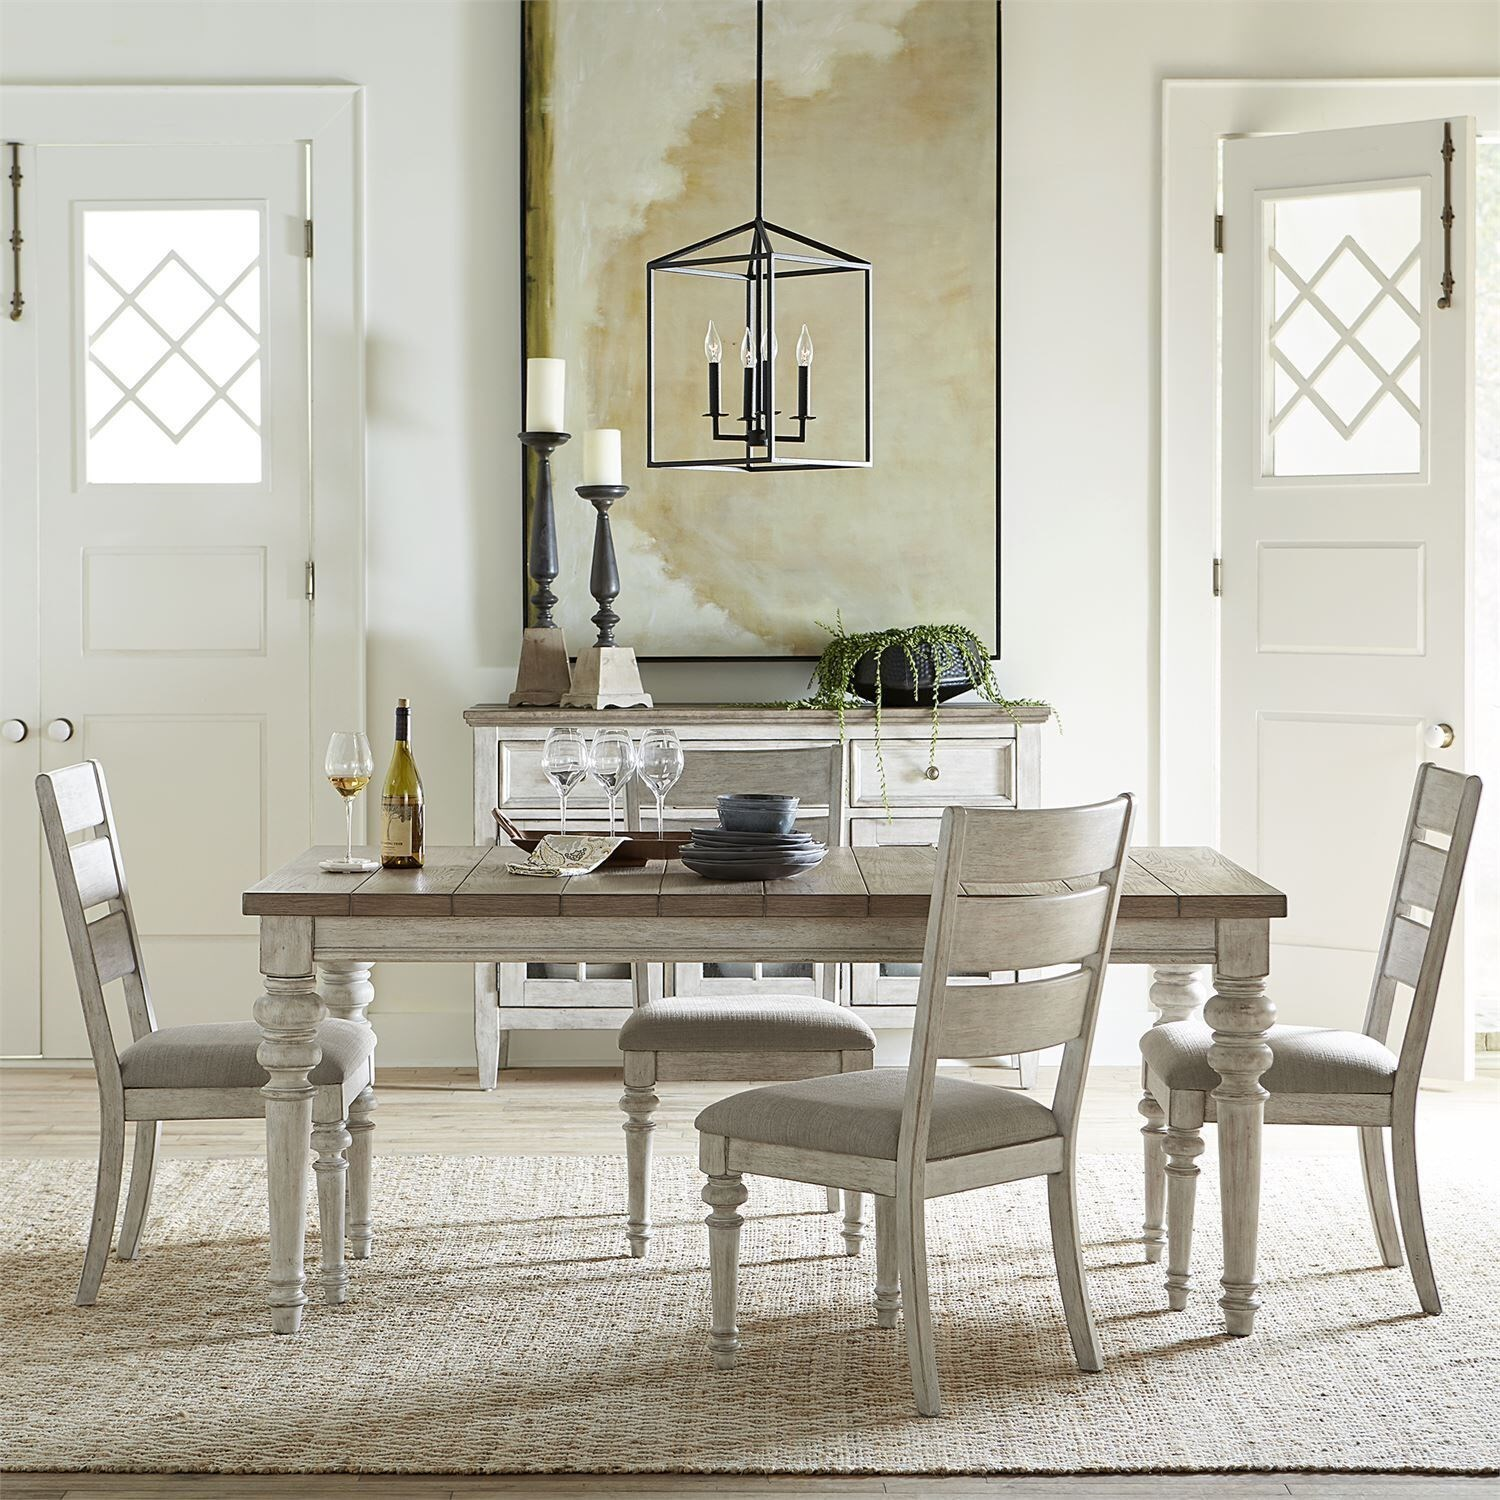 Heartland 5-Piece Dining Set by Liberty Furniture at Upper Room Home Furnishings